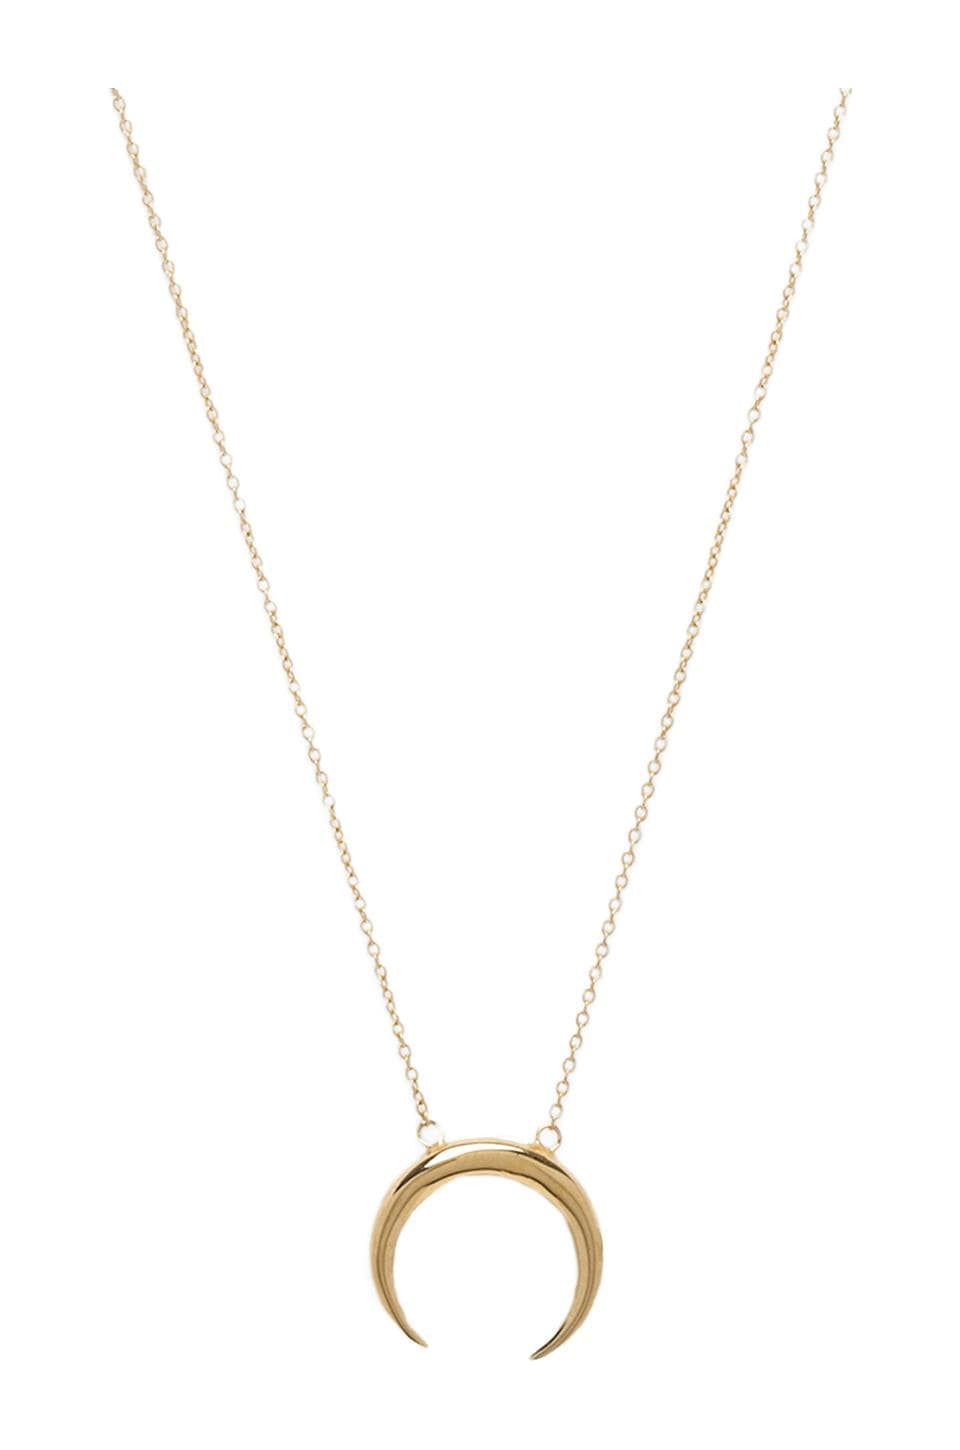 Jacquie Aiche Small Crecent Necklace in Gold Vermeil